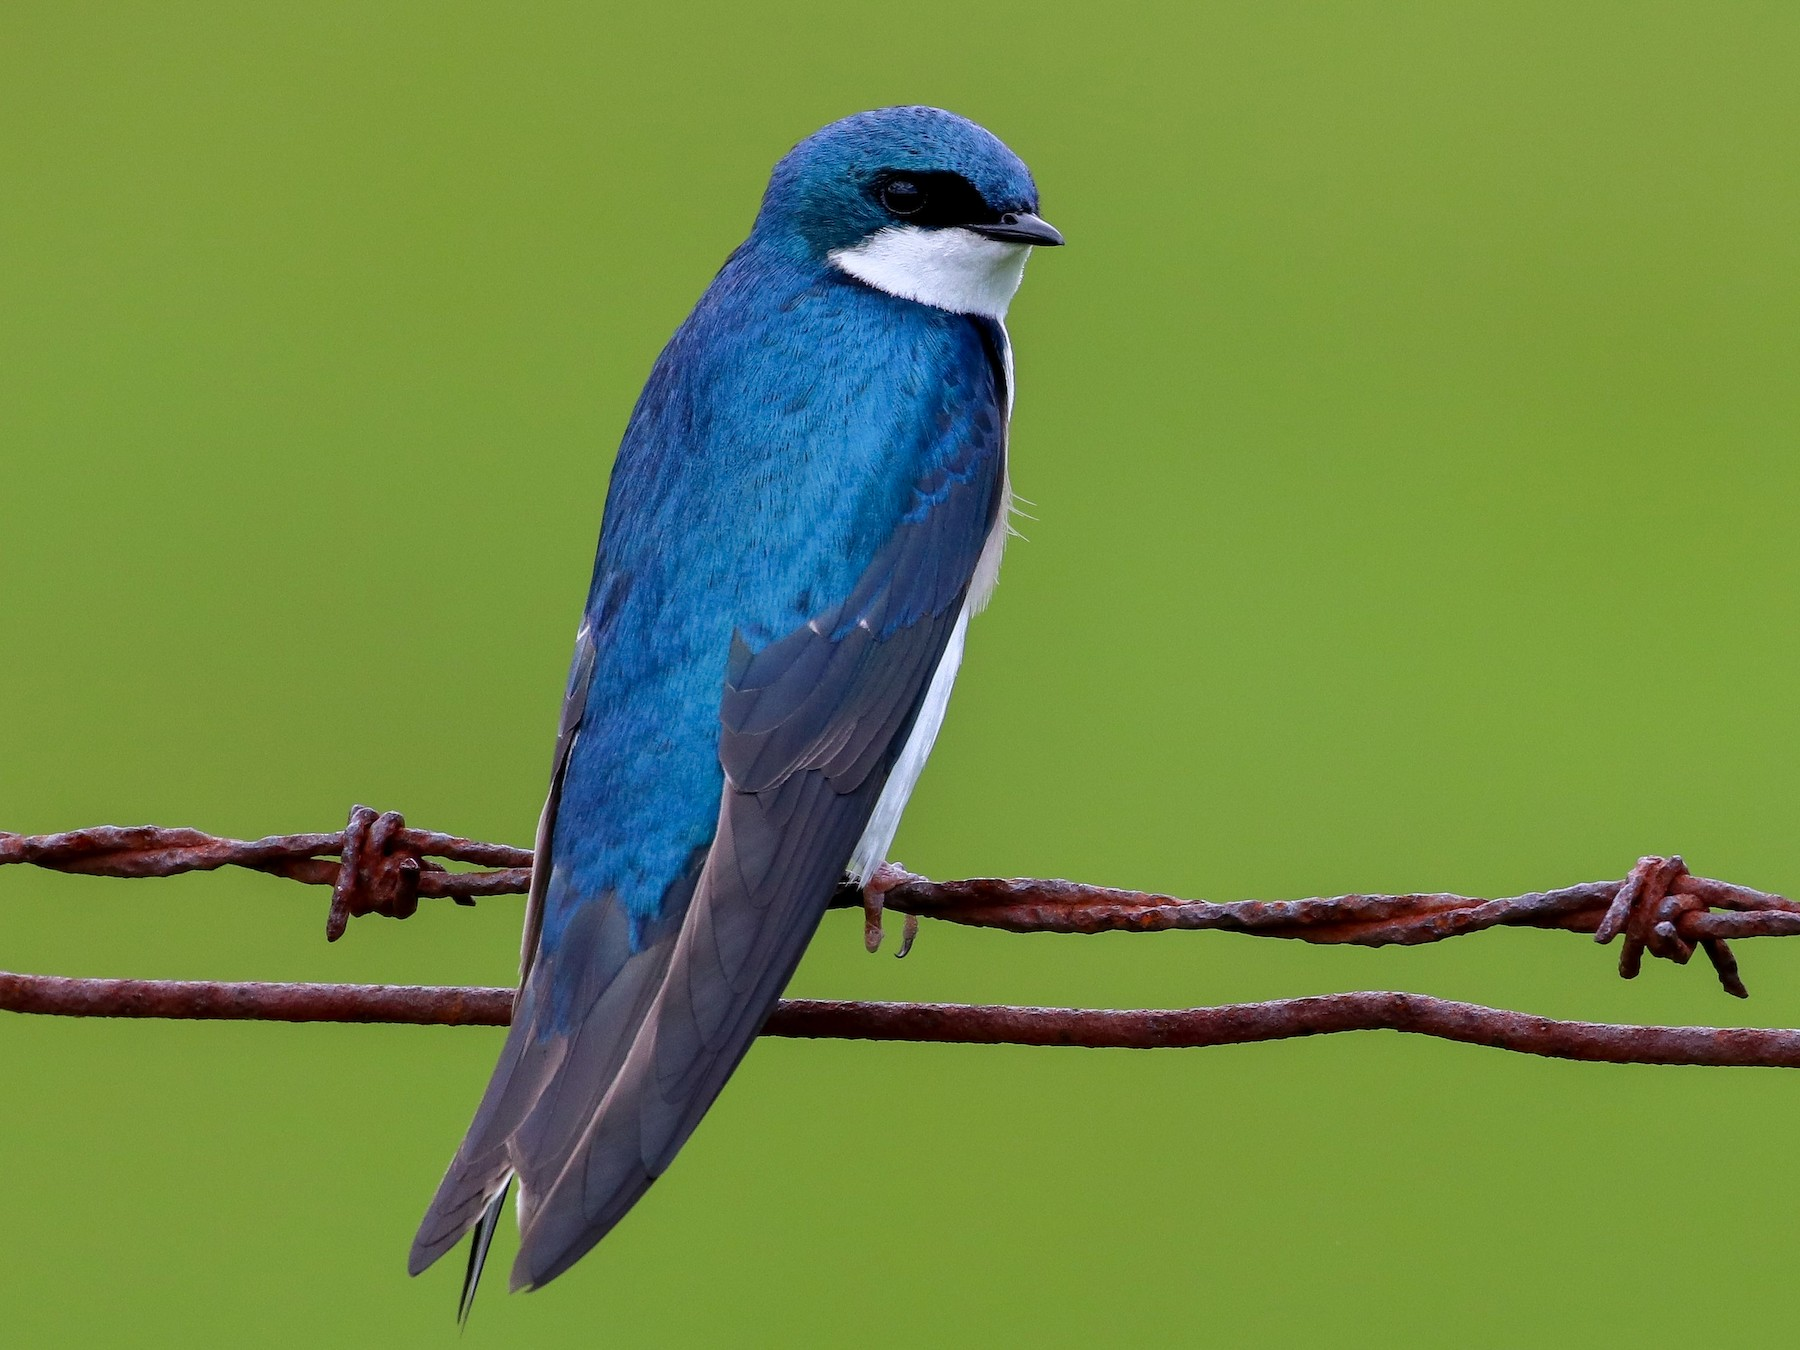 Tree Swallow - Martina Nordstrand